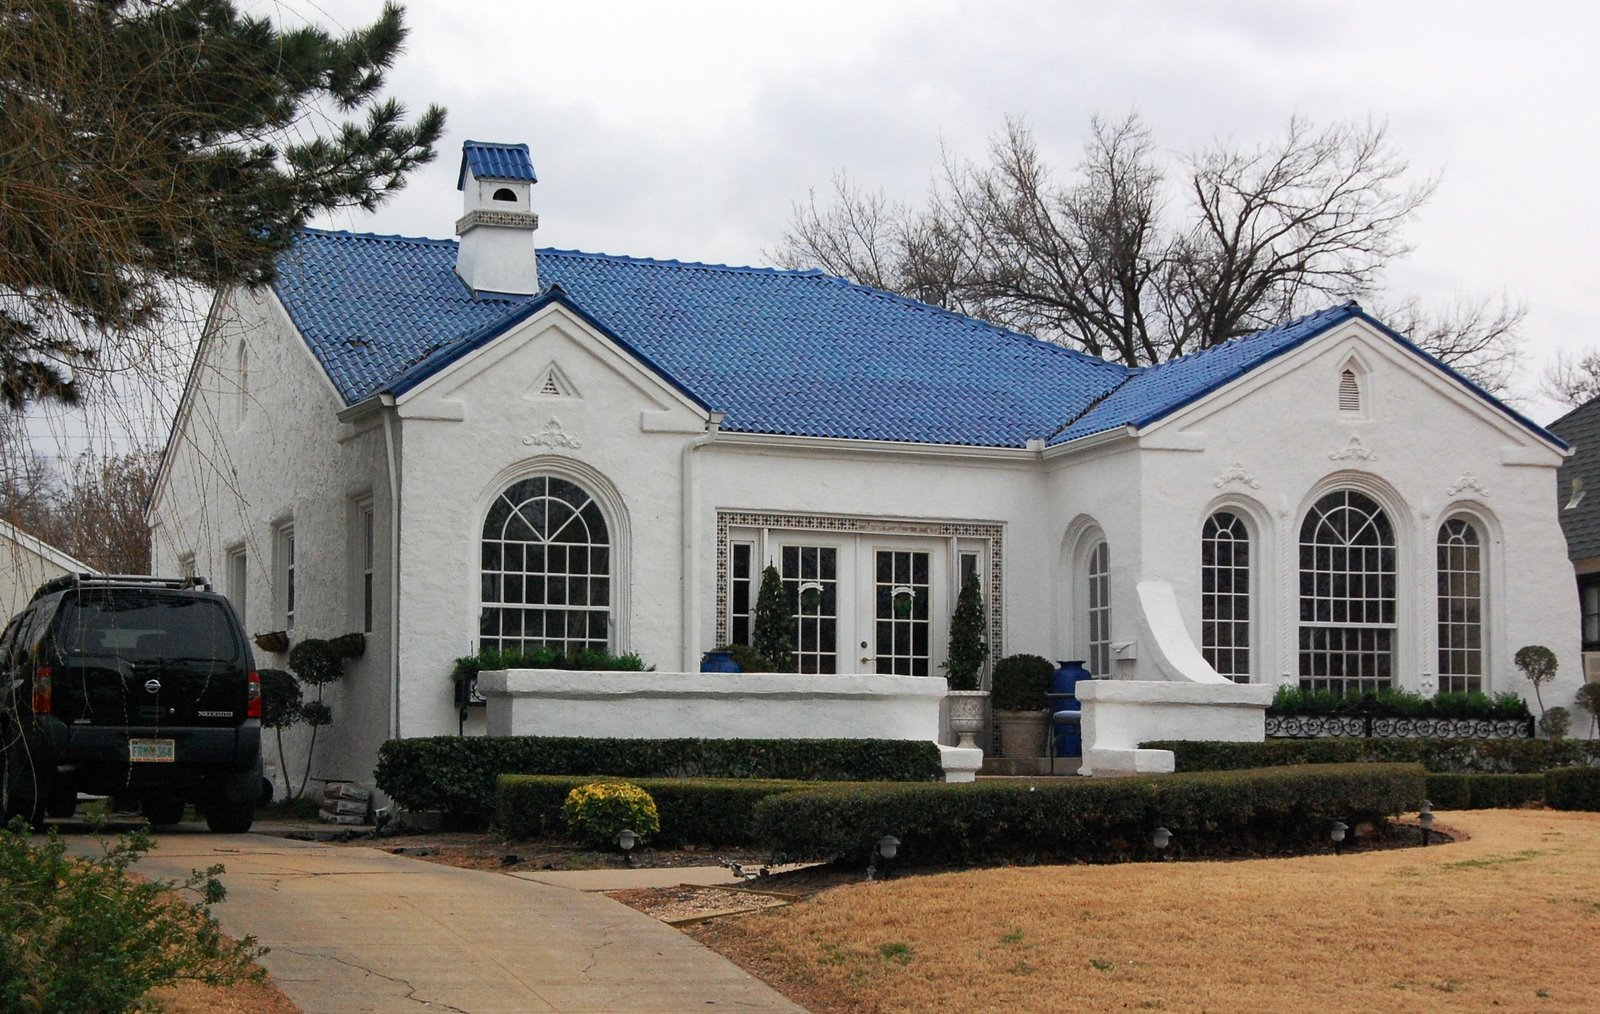 Blue Doors and Roofs: Oklahoma City's Houses of Different ...